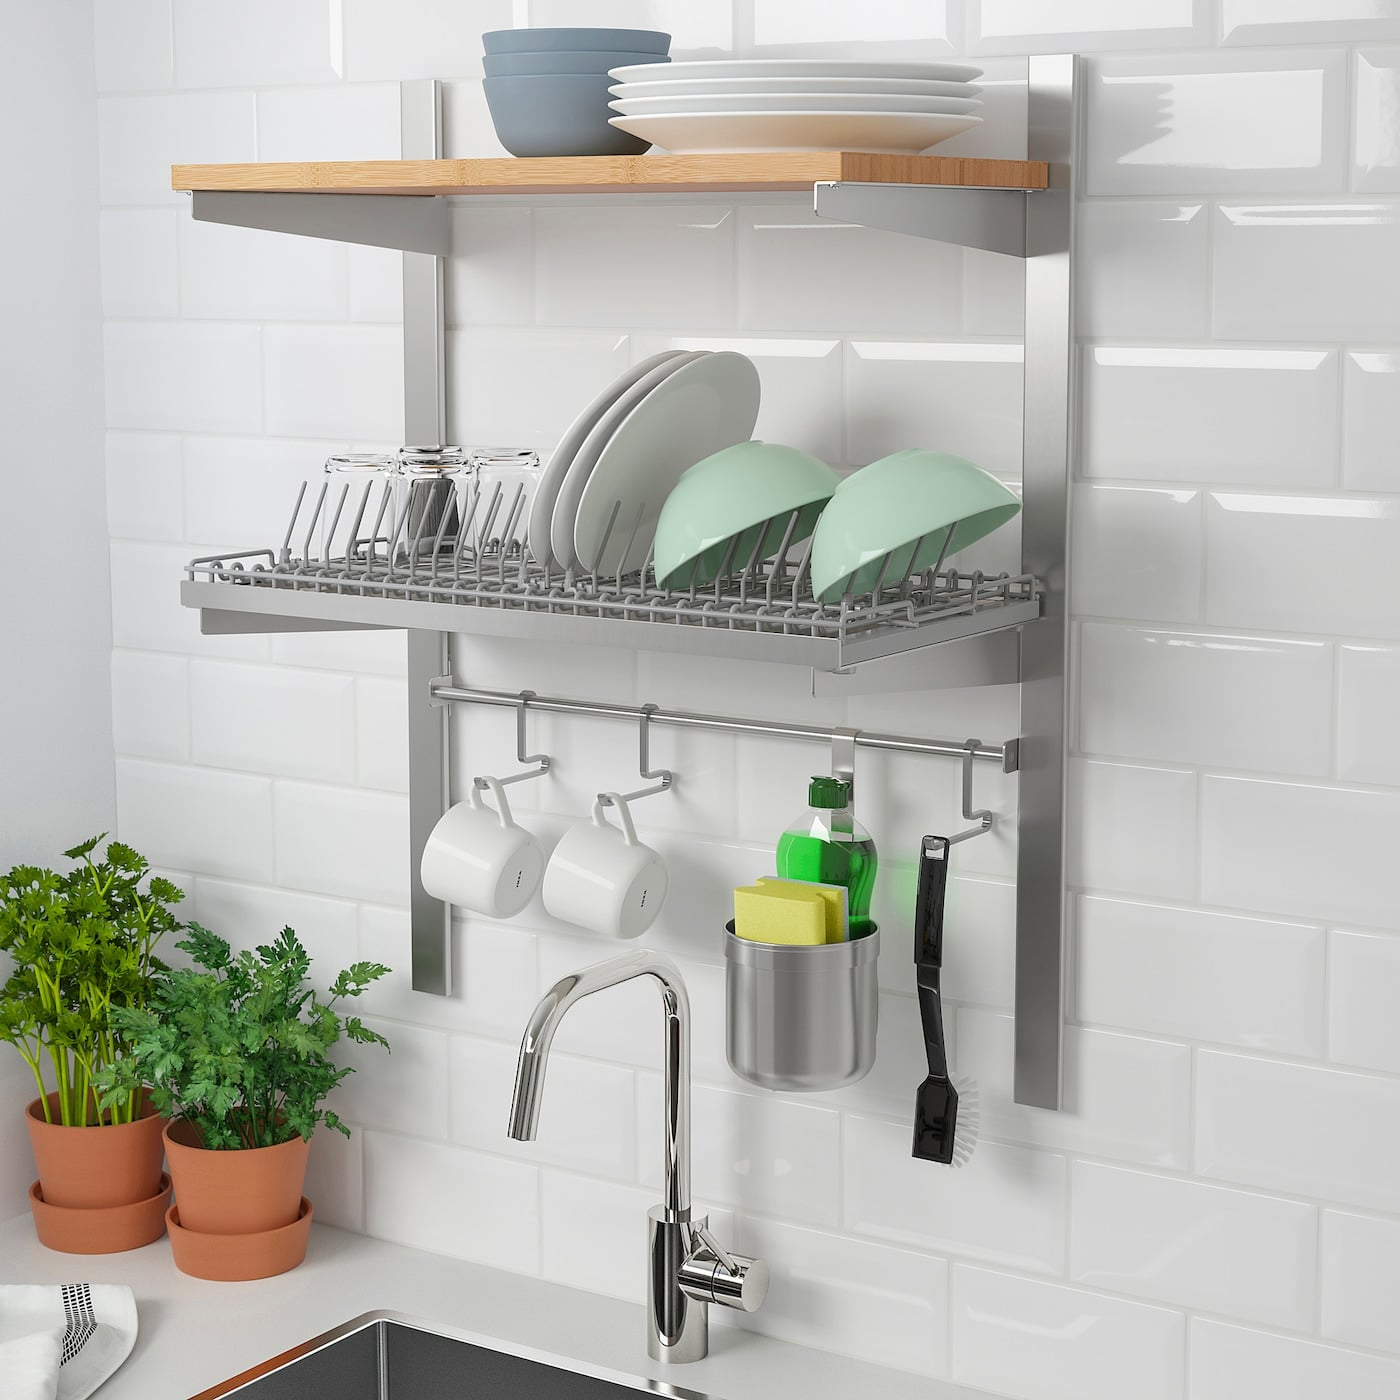 The Best Ikea Kitchen Products For Small Spaces  12  POPSUGAR Home